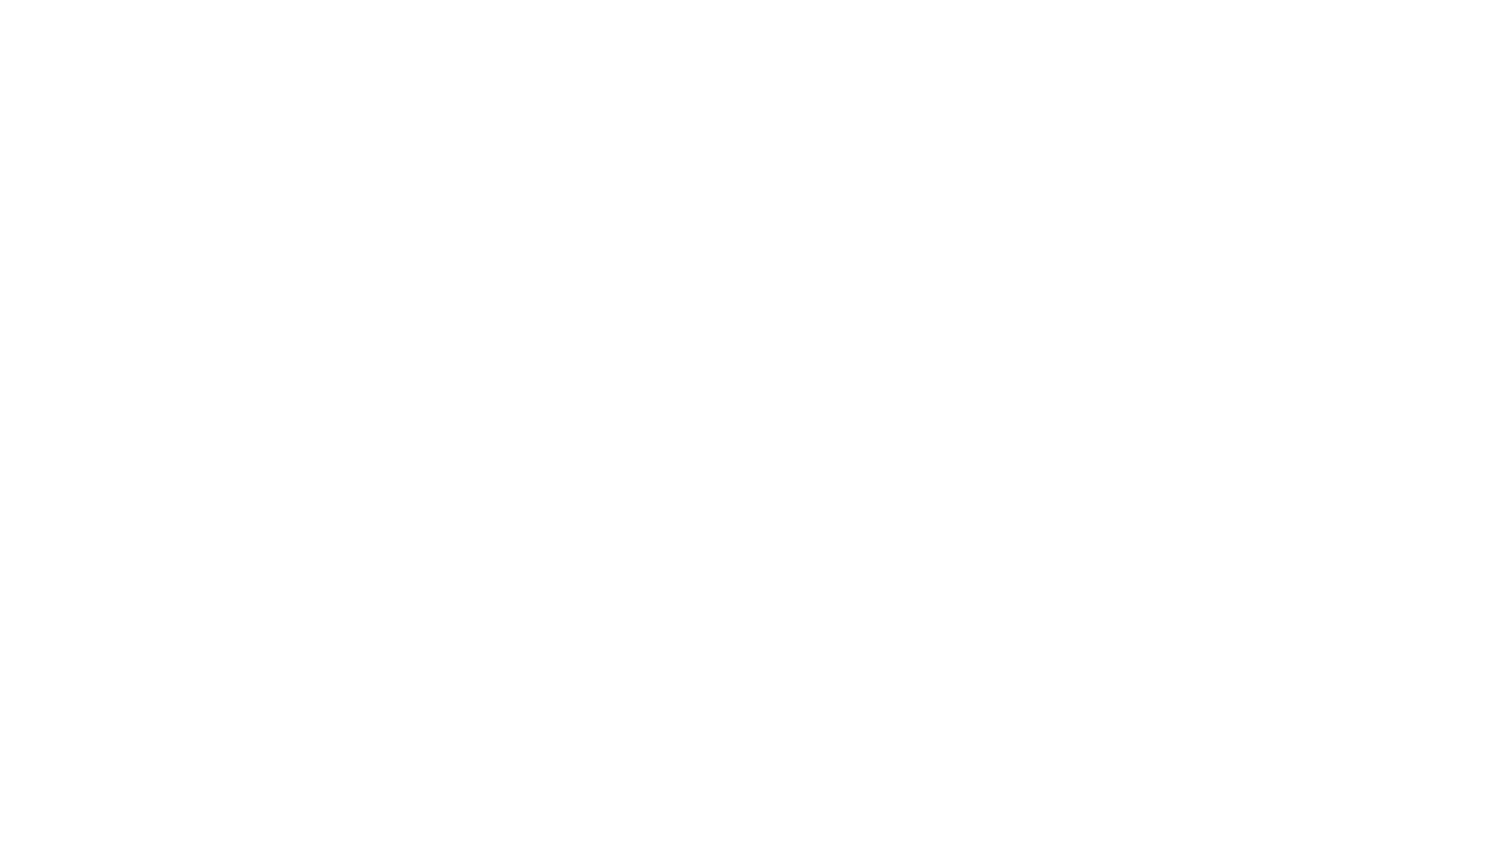 49th Parallel Group